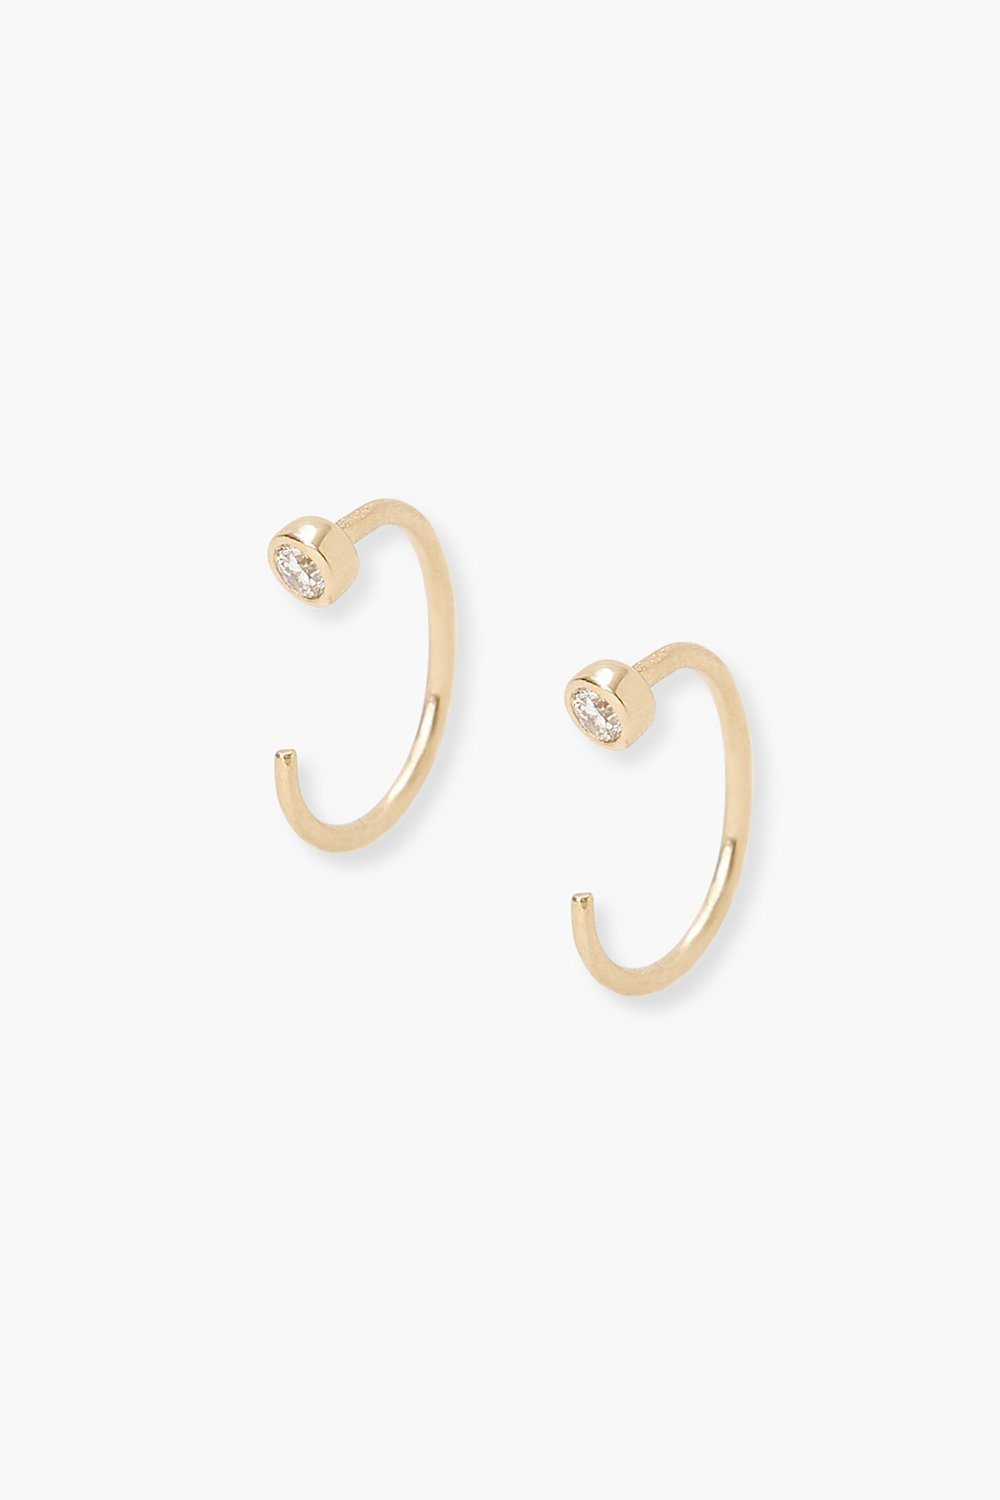 14k Gold Round Diamond Ear Cuff Earrings